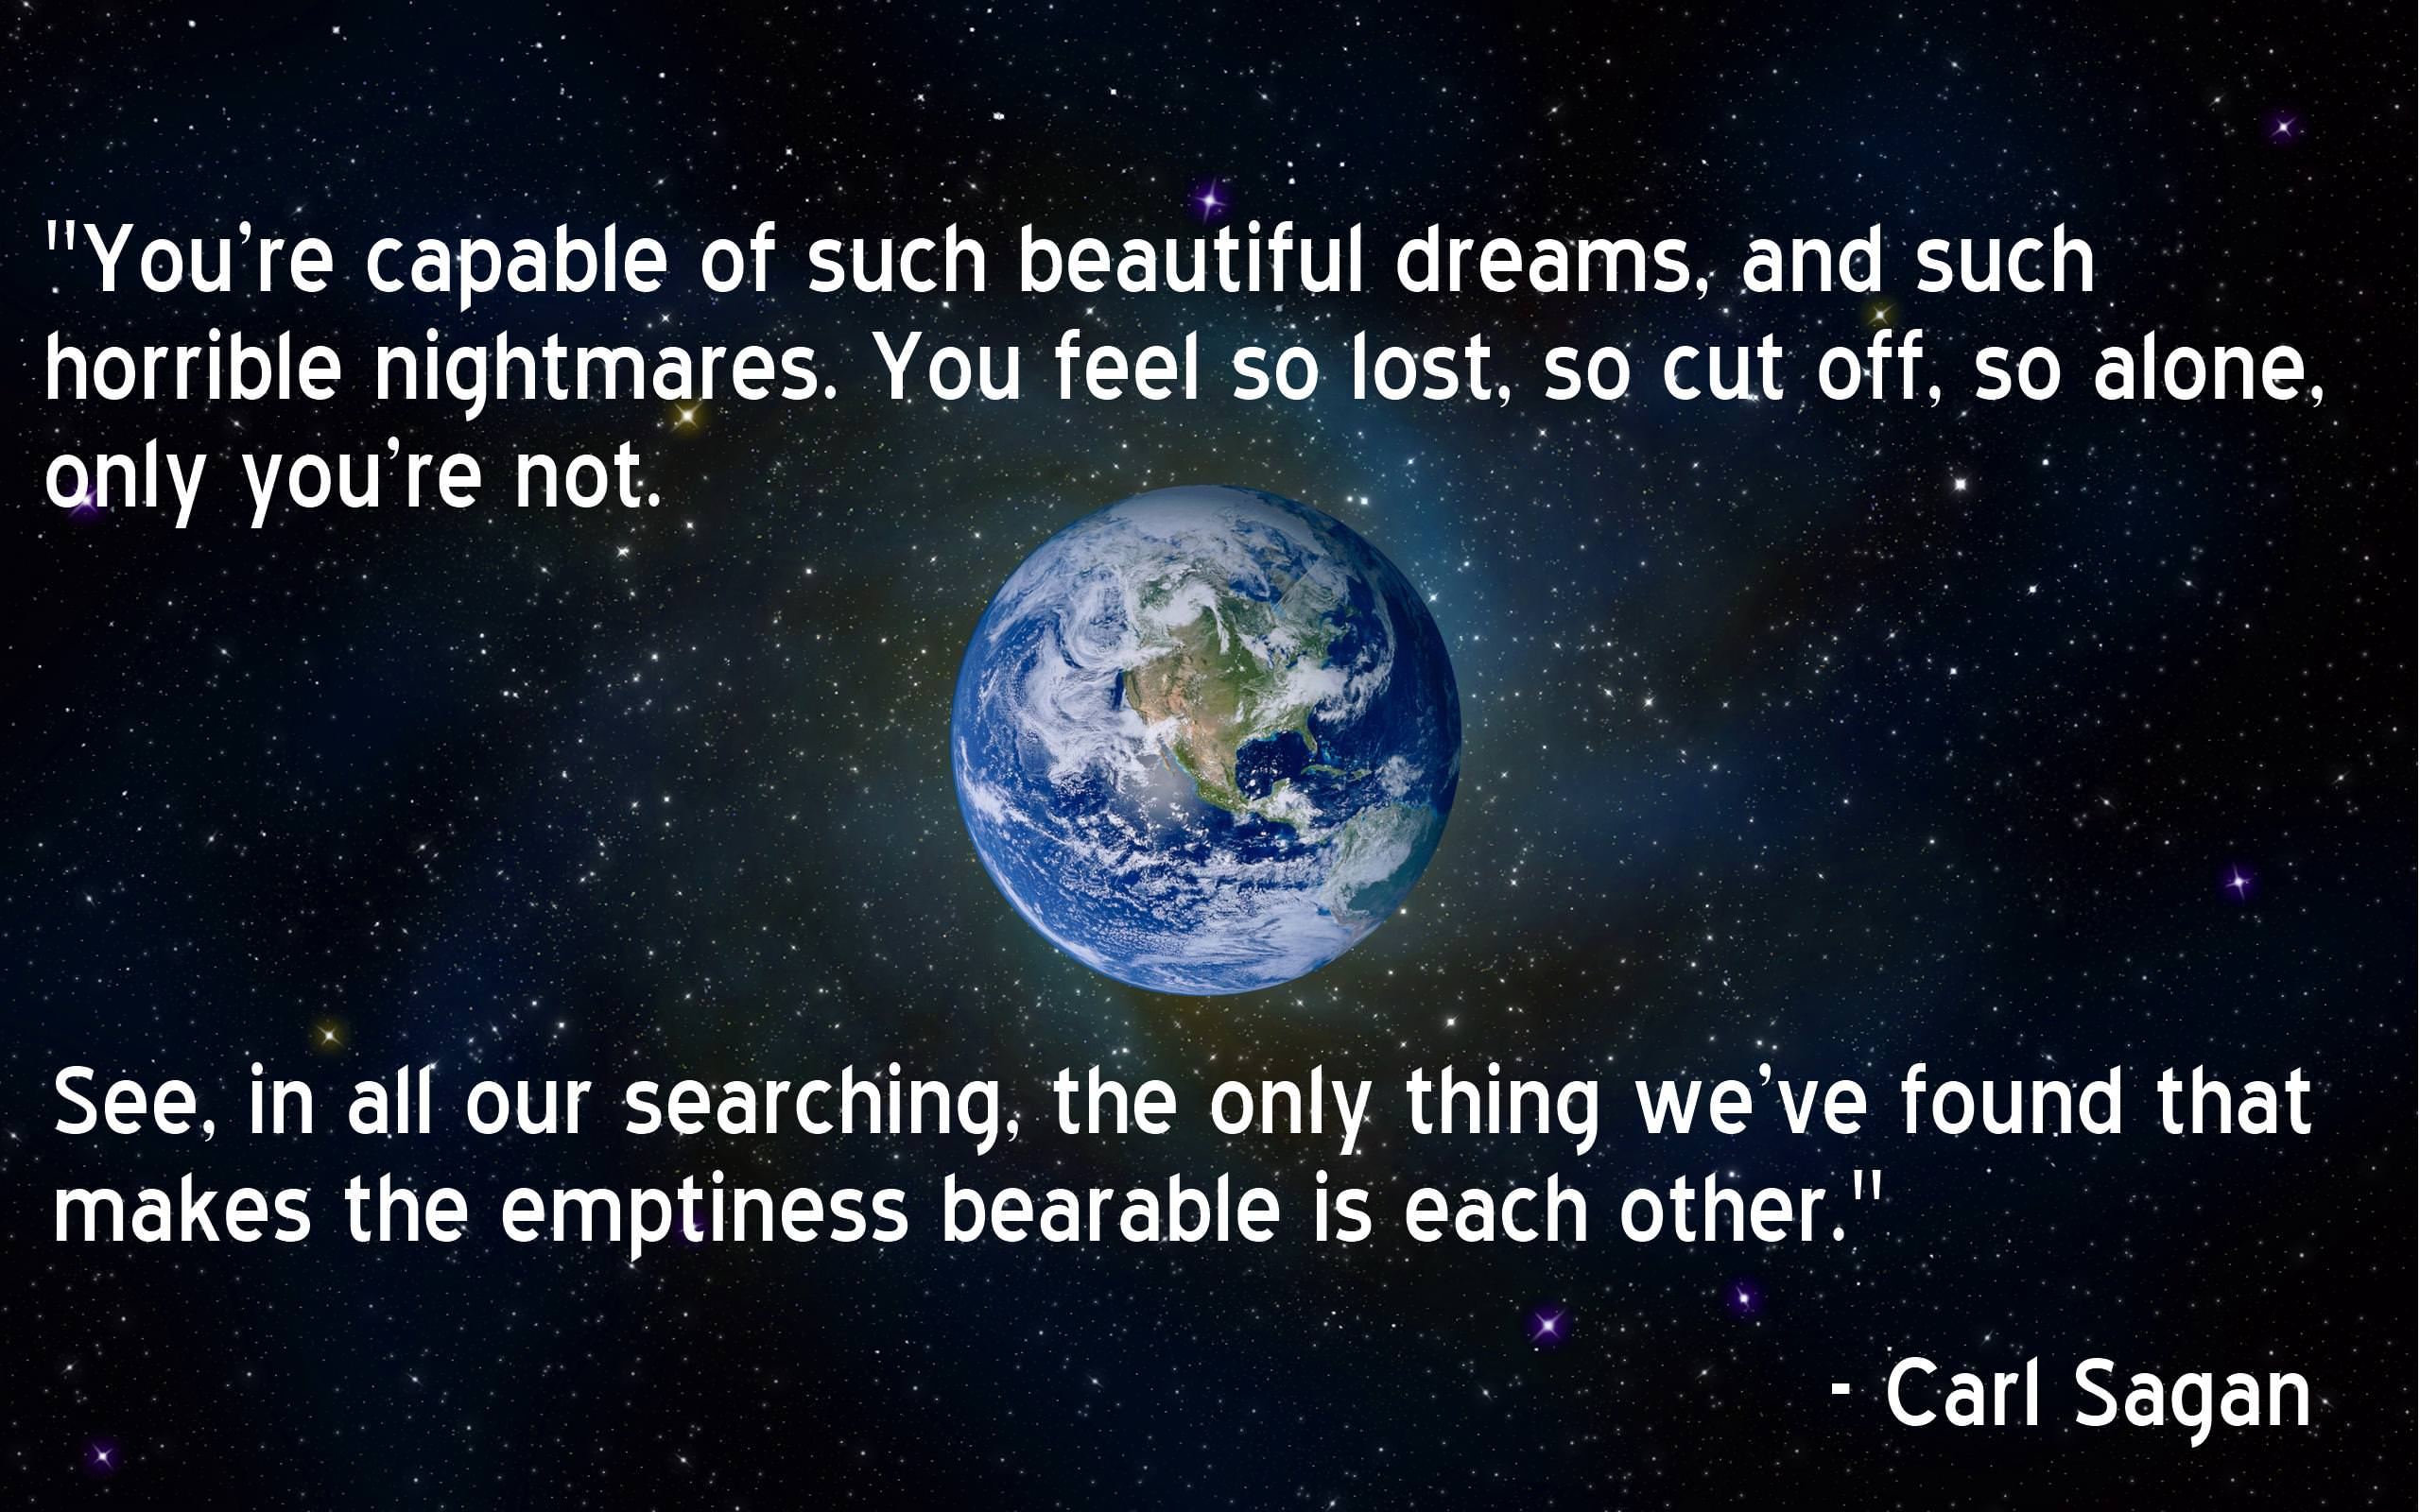 [Image]Carl Sagan on the human civilization